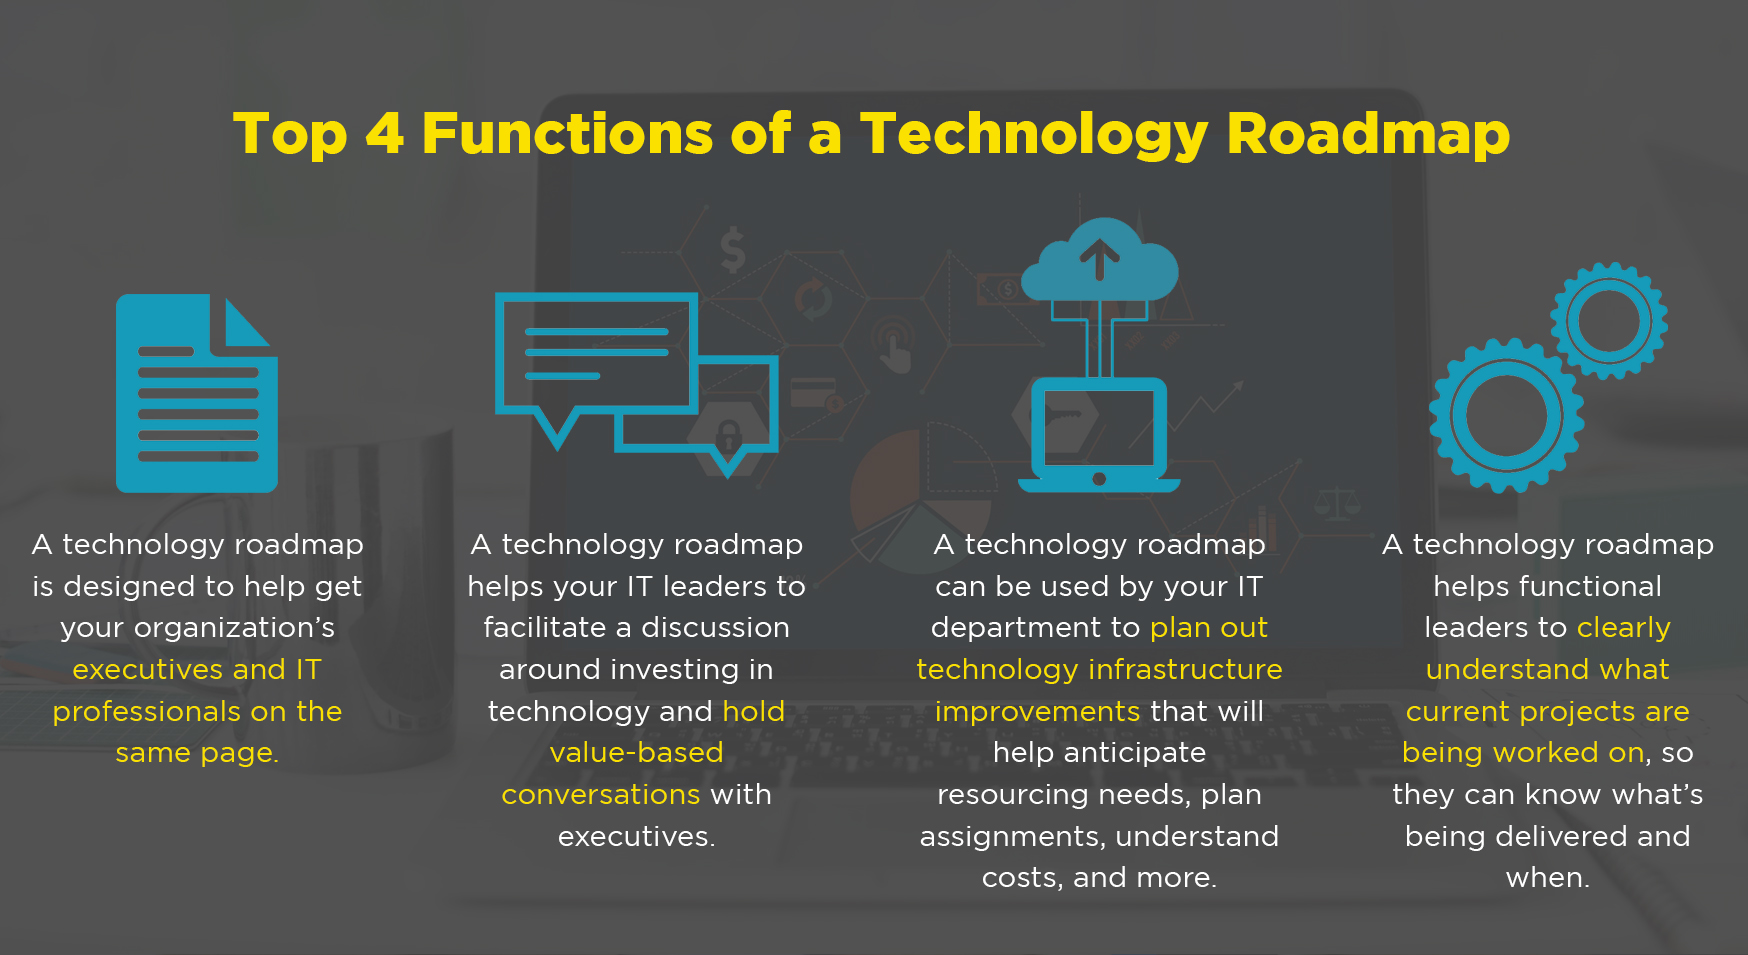 There are four primary functions of a technology roadmap